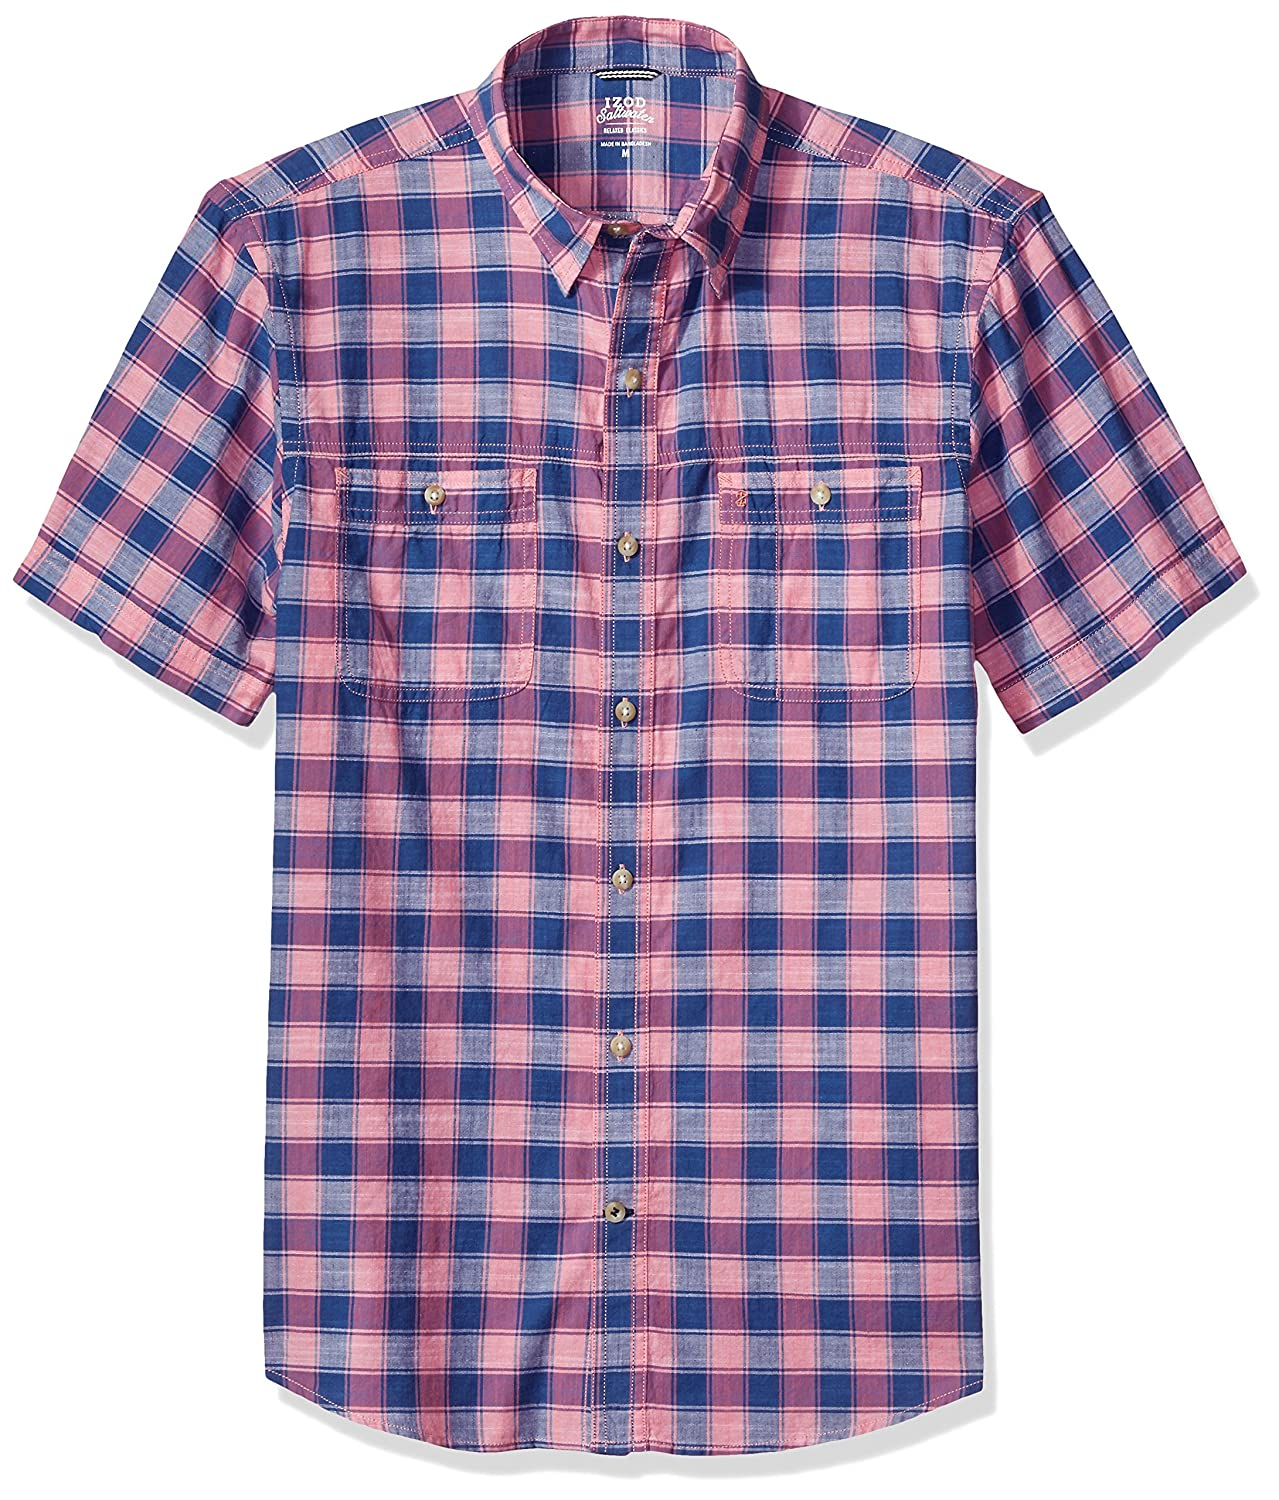 Izod Men's Saltwater Dockside Chambray Plaid Short Sleeve Shirt IZOD Men's Sportswear 82SW724